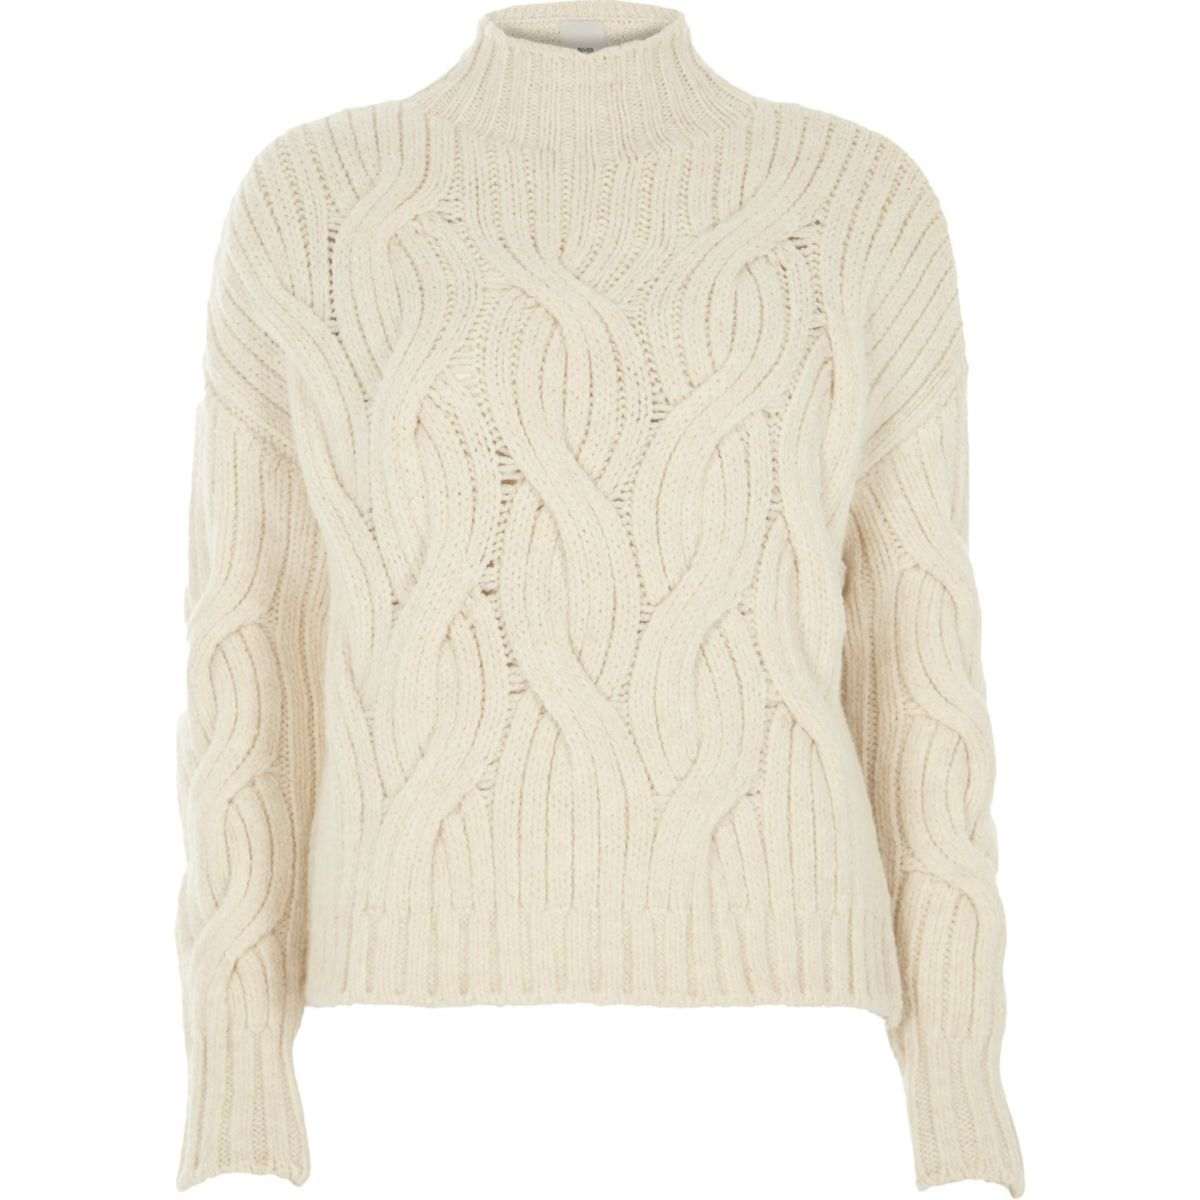 832045423ed Cream high neck chunky cable knit jumper | Winter/Fall wardrobe ...